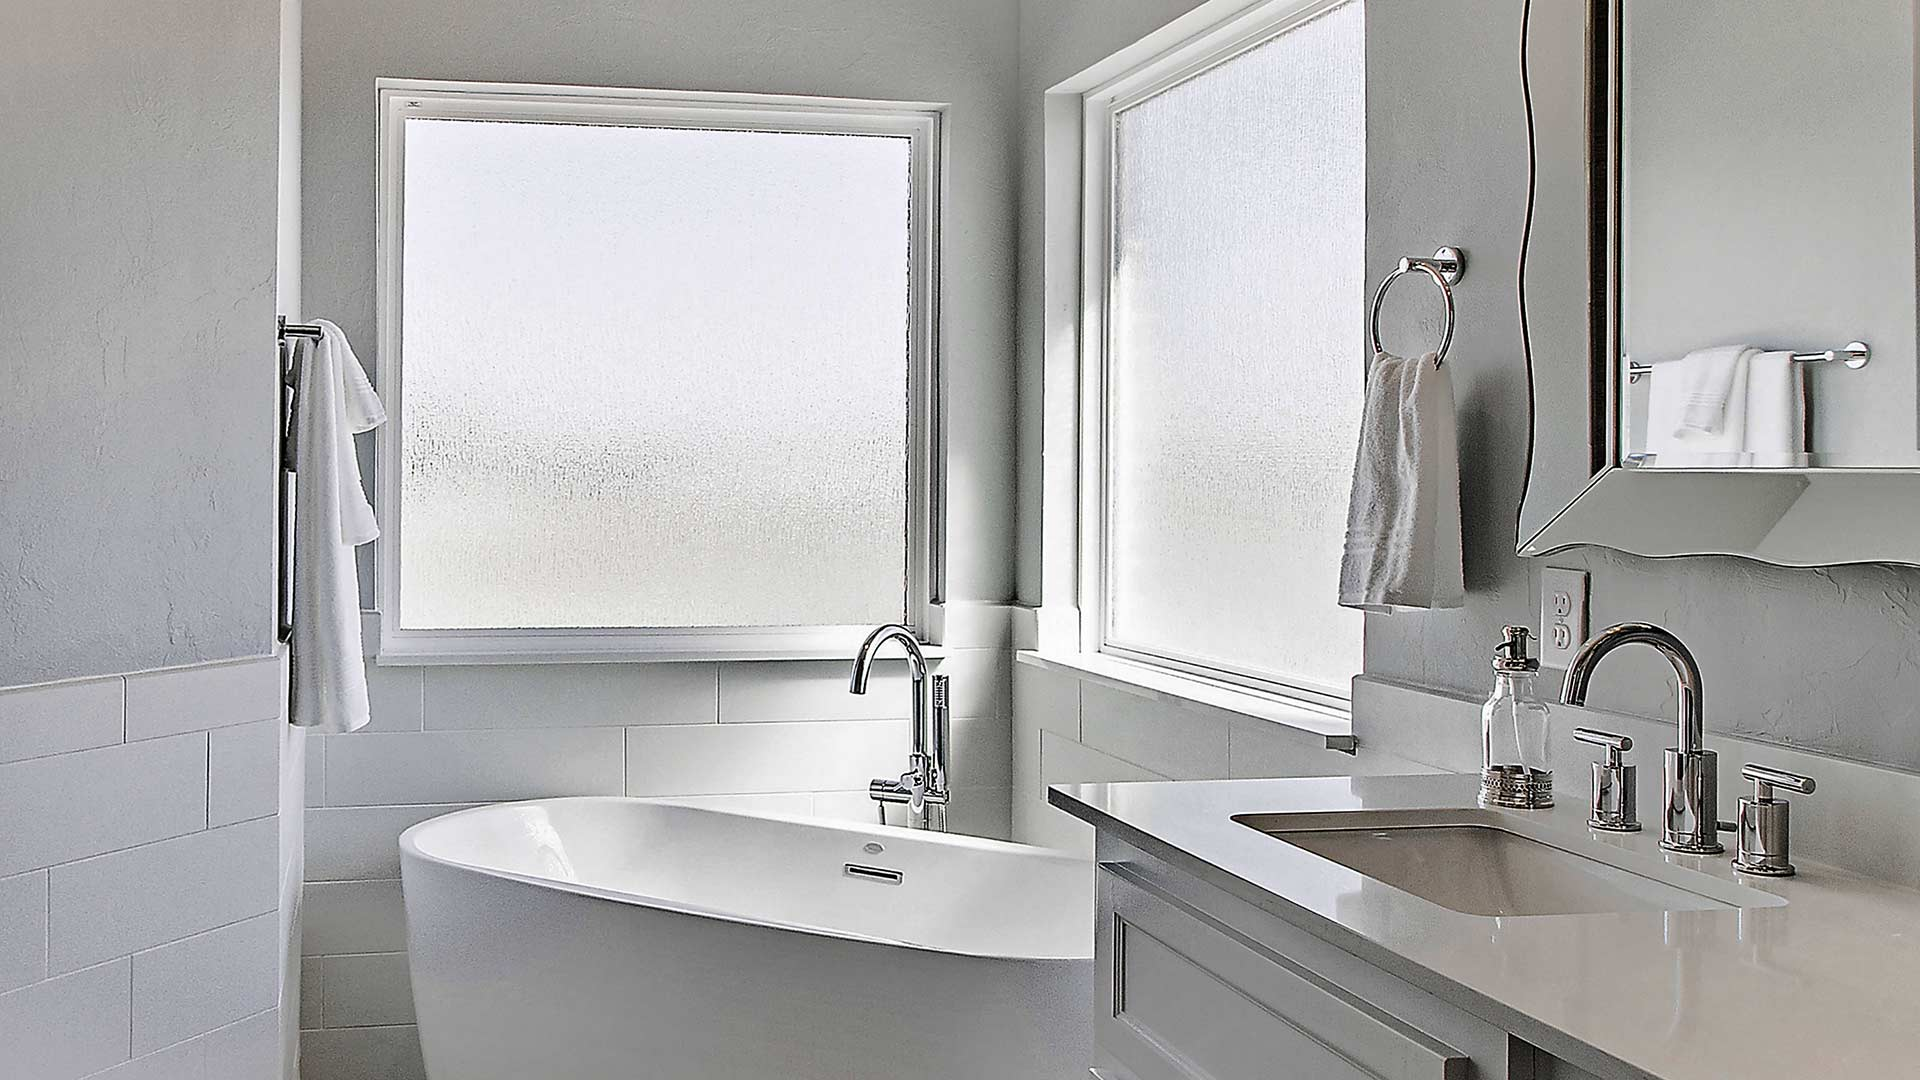 A bathroom window with specialty frosted privacy glazing.